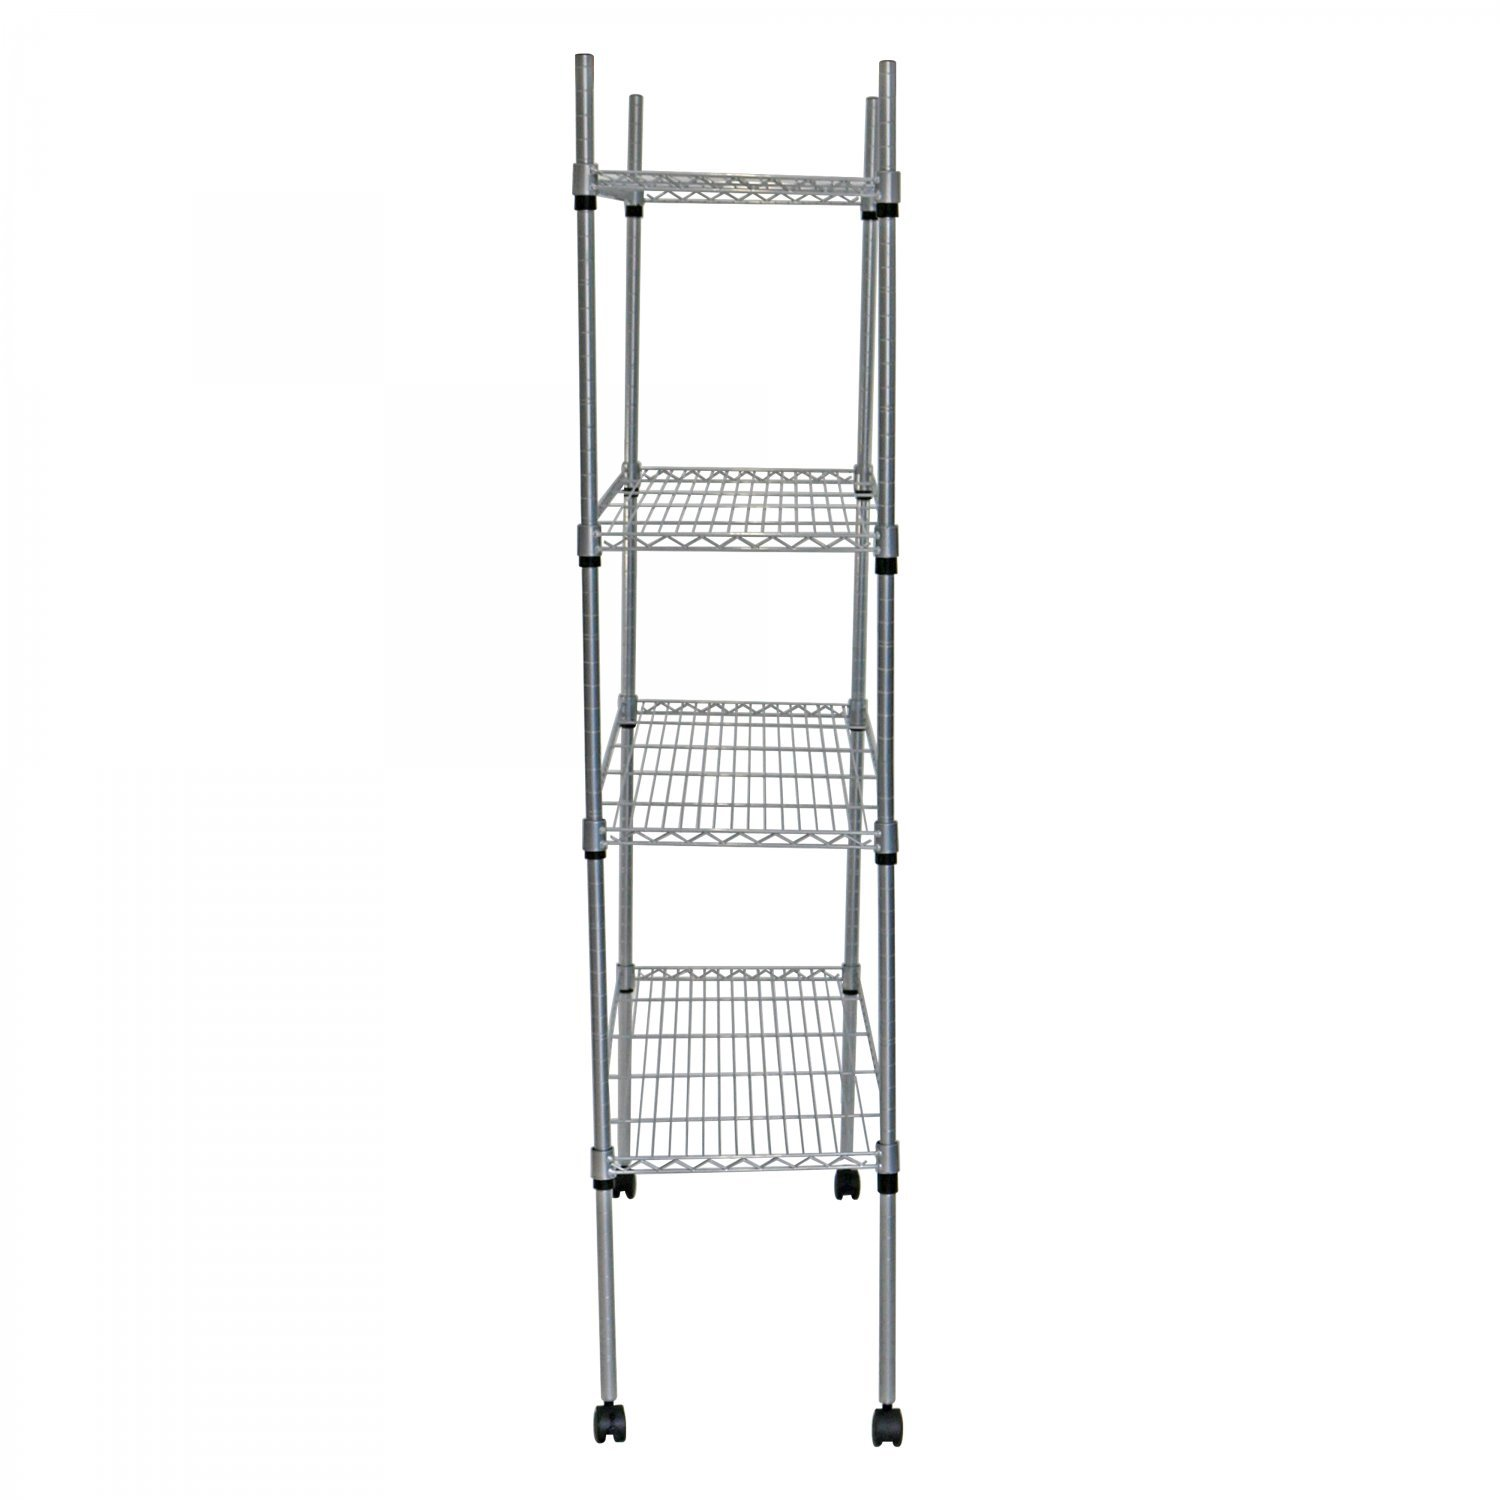 4 Tier Heavy Duty Steel Wire Rack Kitchen Storage Unit W Wheels